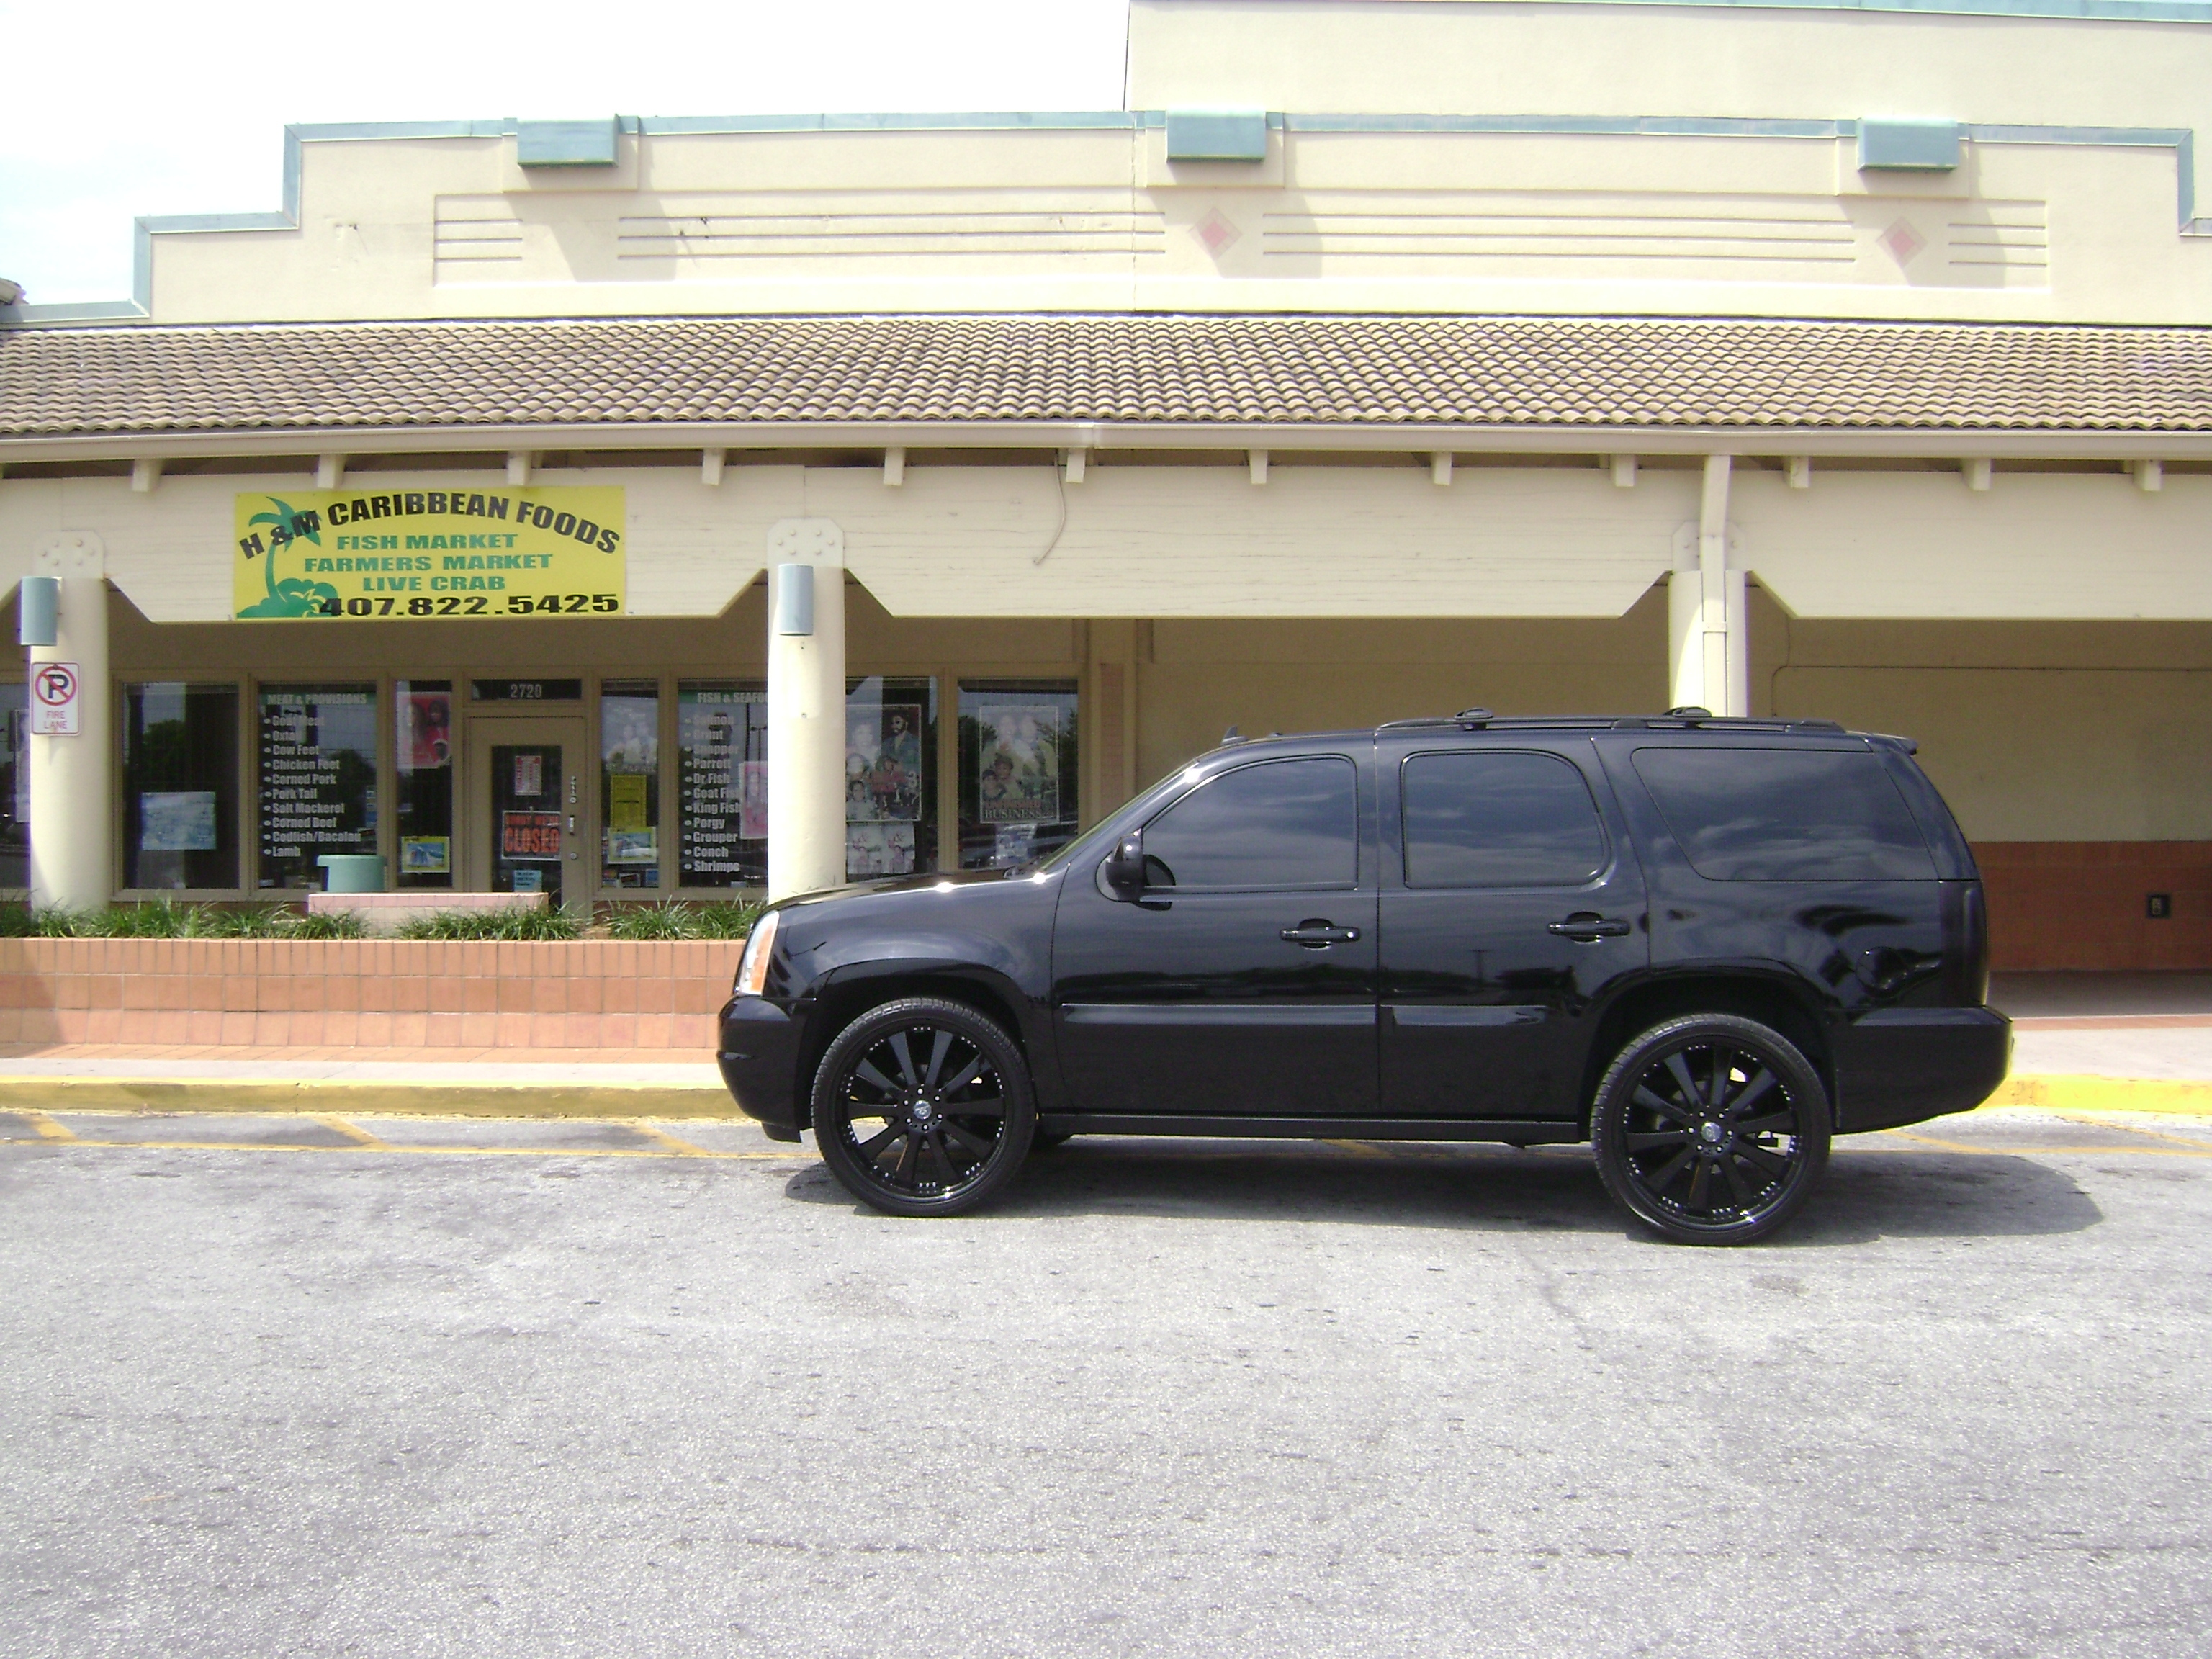 Murdered out on Lorenzos 6s